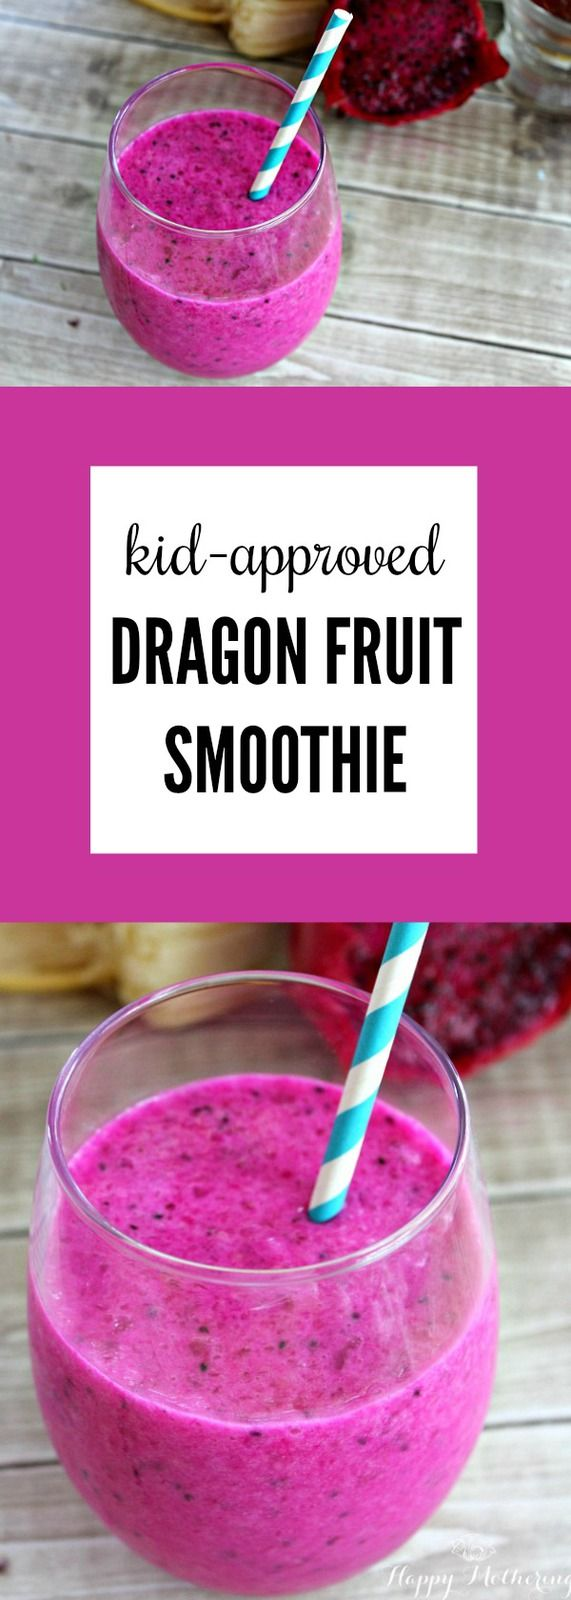 Exotic Kid-Approved Dragon Fruit Smoothie - Happy Mothering